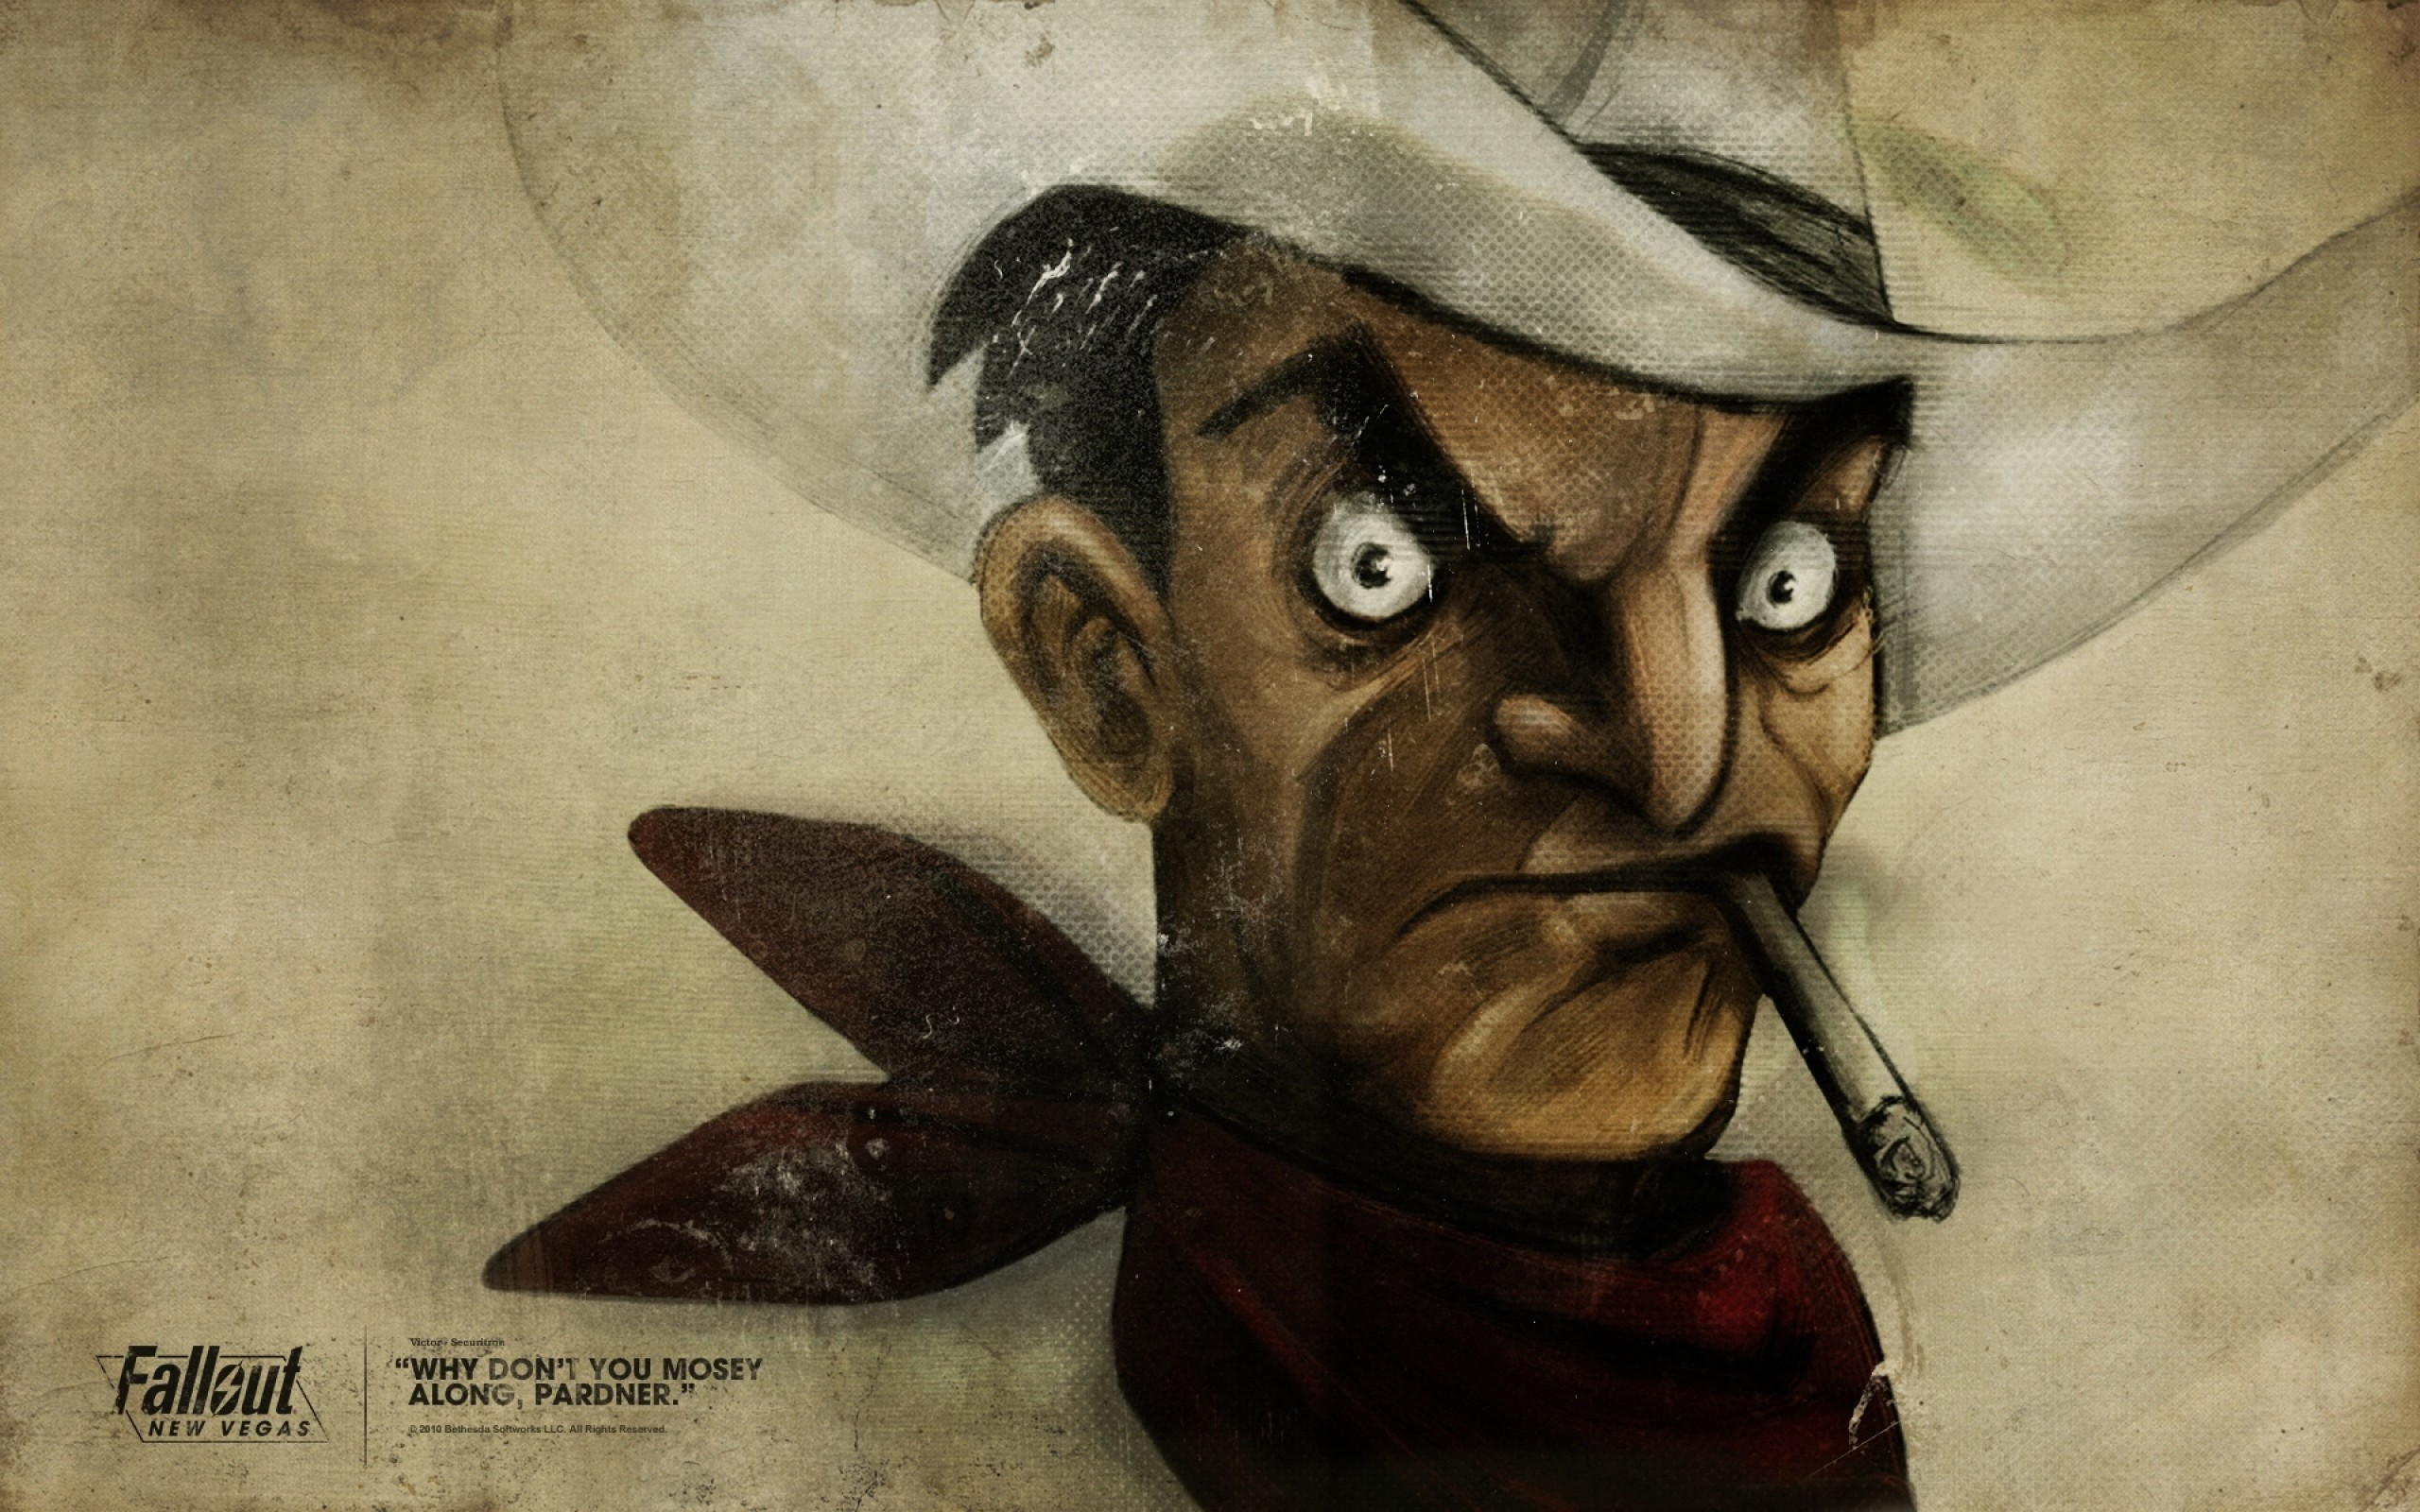 2560x1600 Preview wallpaper fallout, quote, cowboy, cigar, face